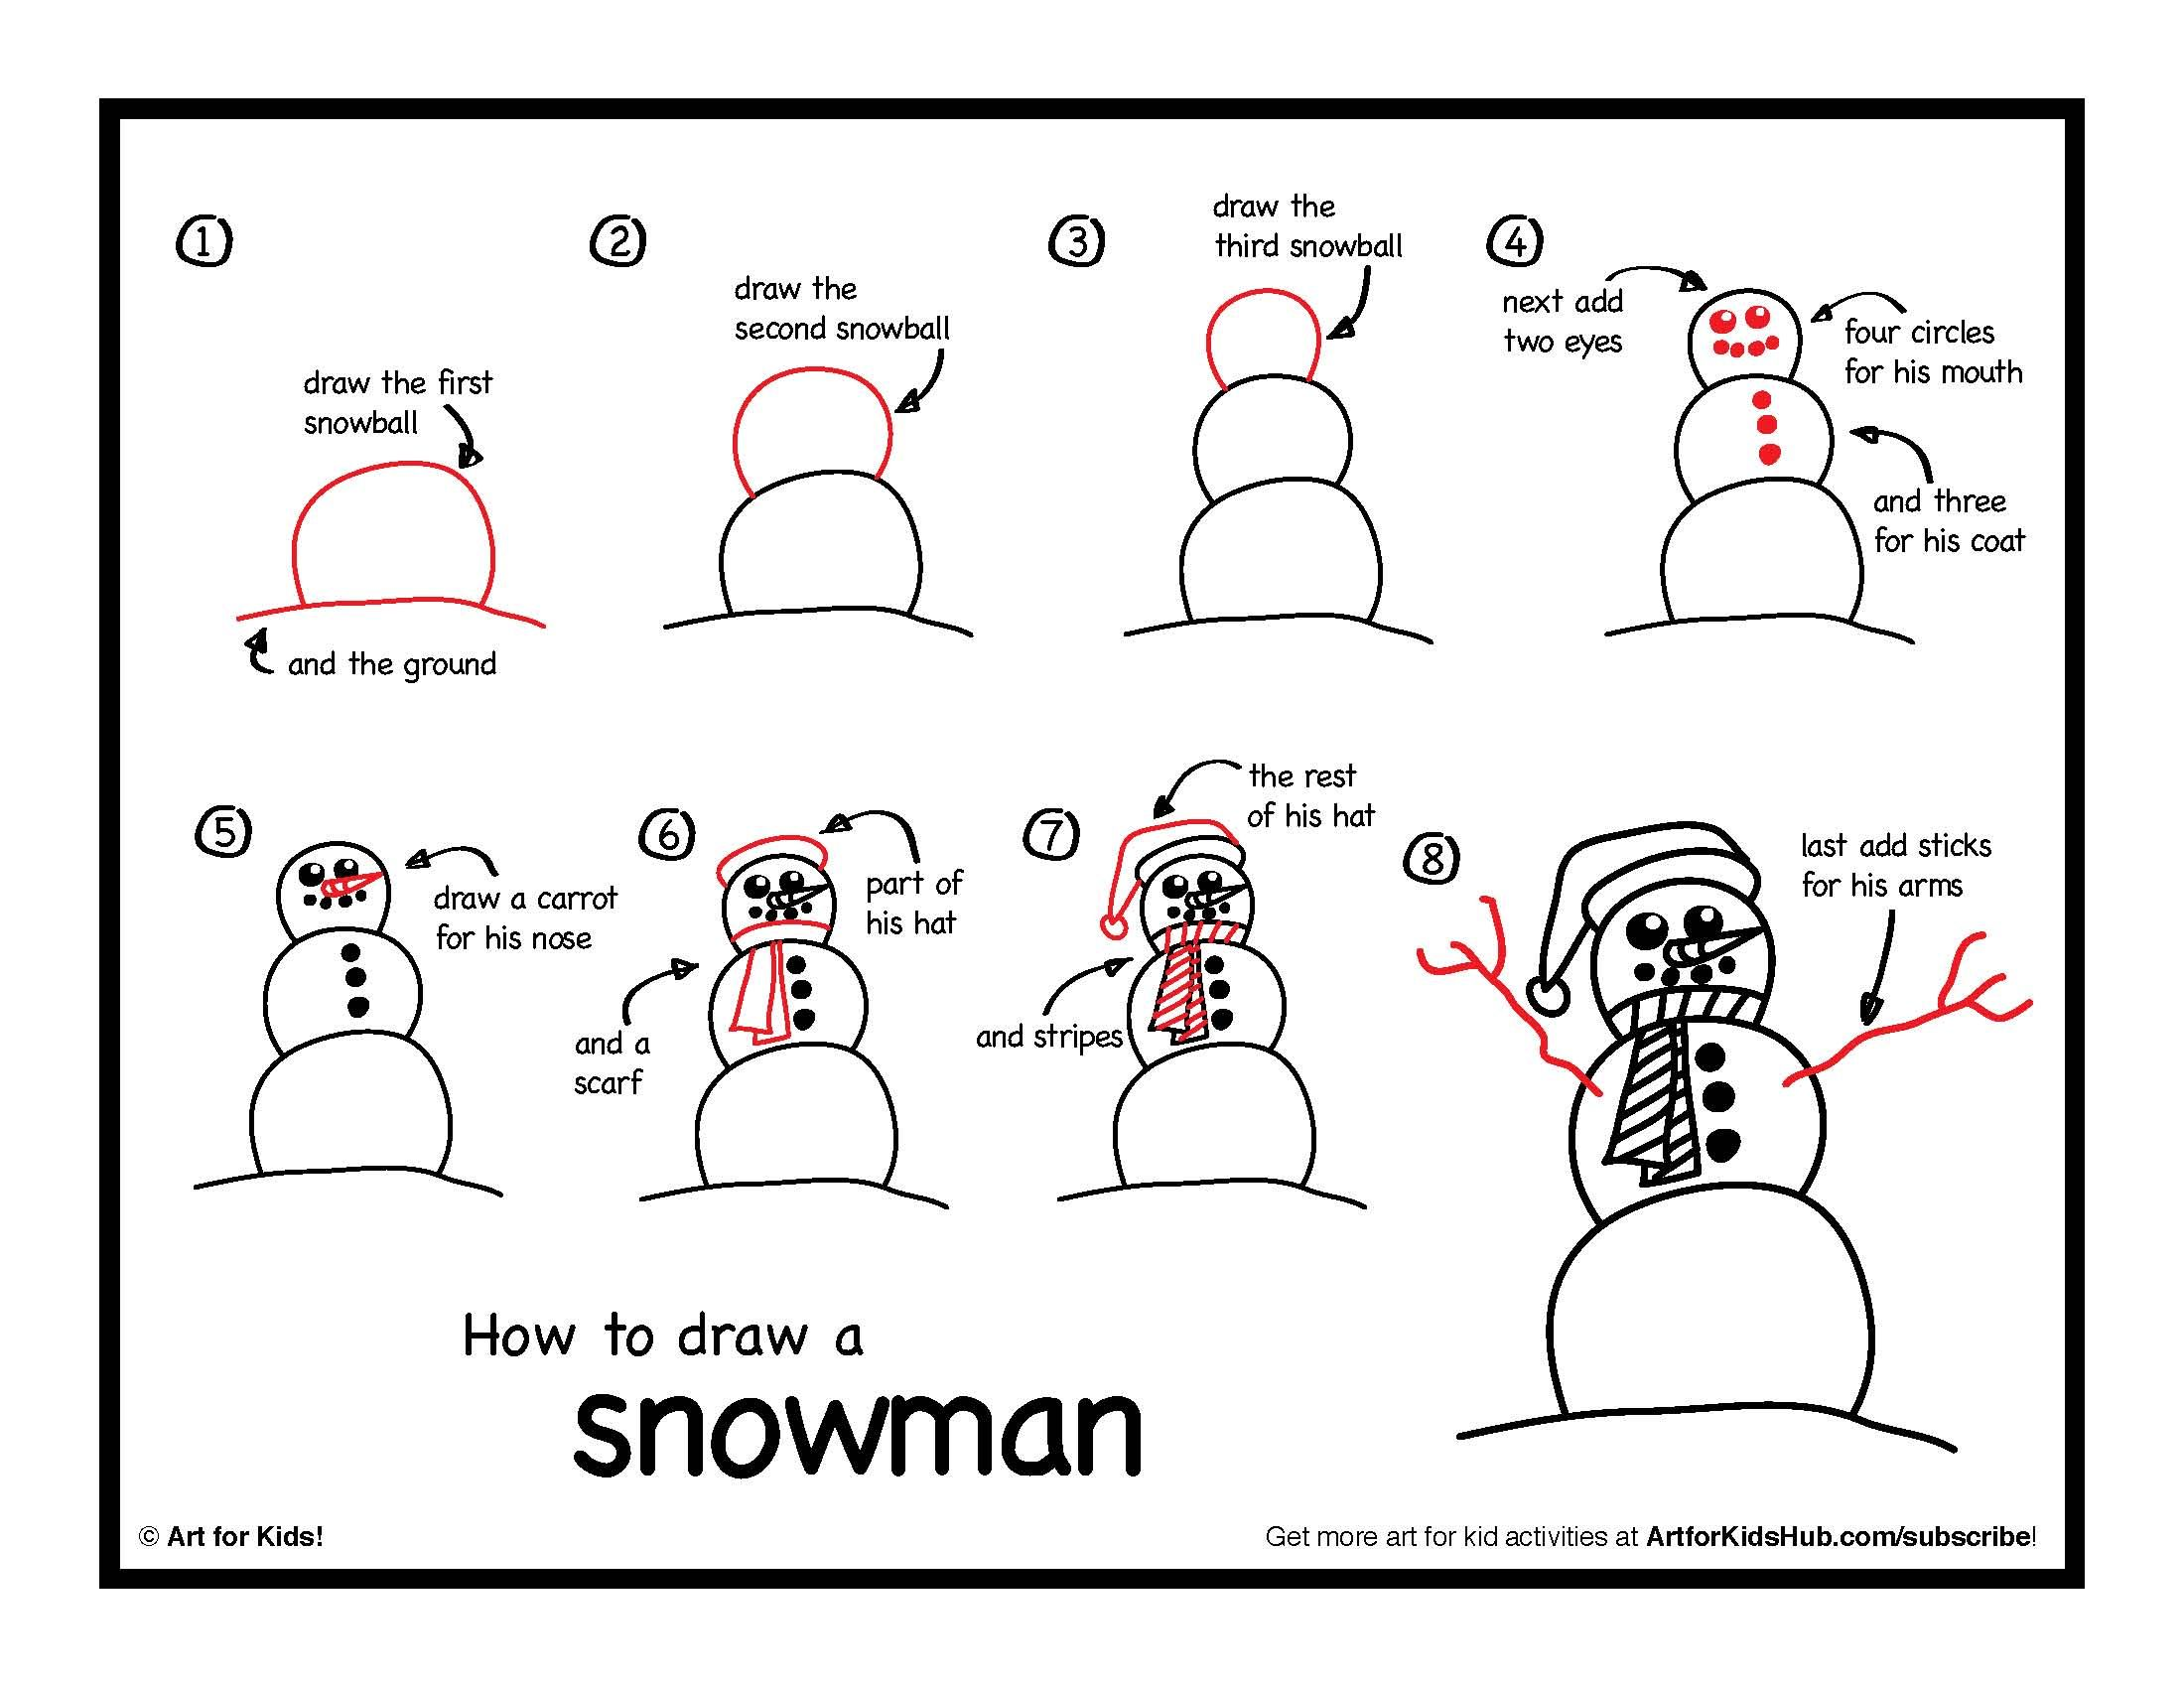 How To Draw A Snowman Art For Kids Hub Easy